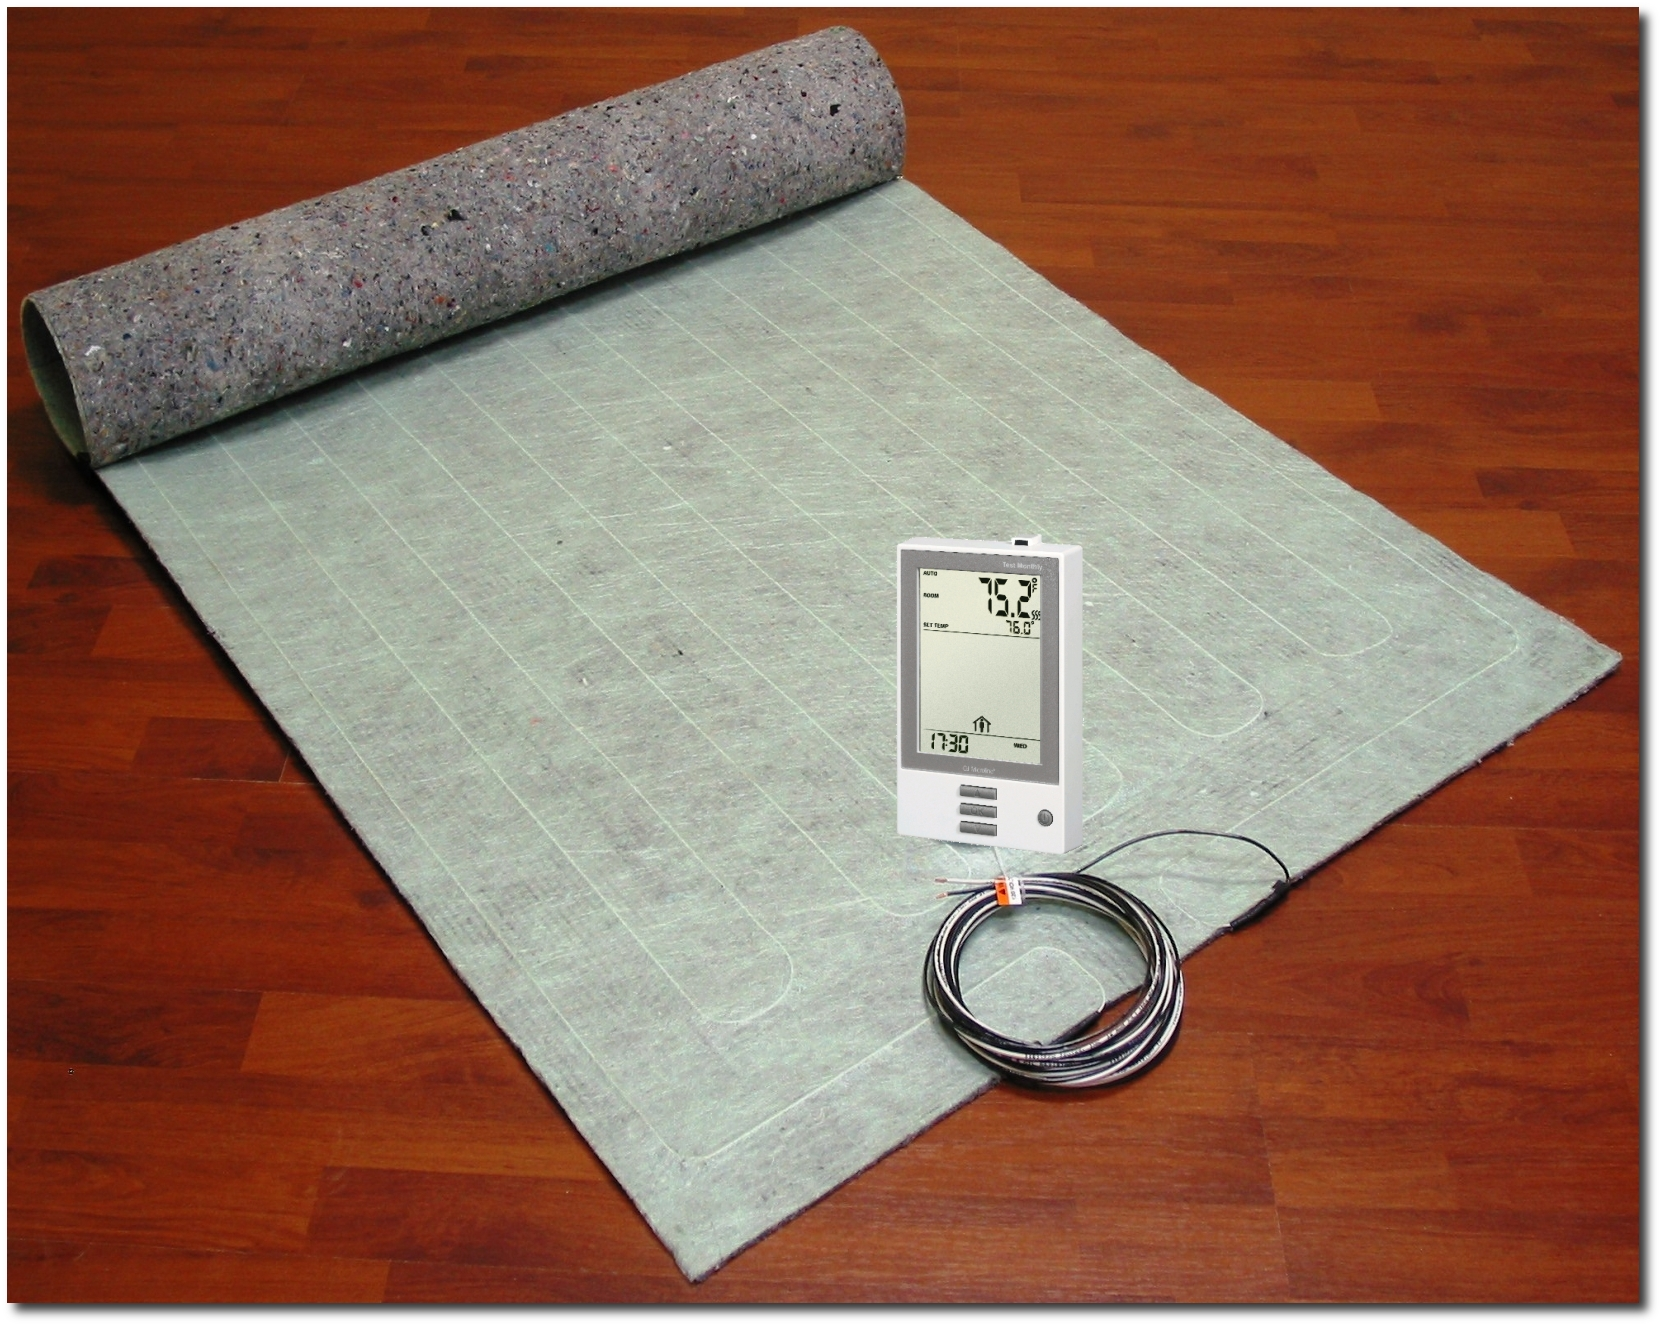 Thermofloor Floor Heating Underlayment Pad For Wood Laminate Floorsthermokit Includes And Thermostat